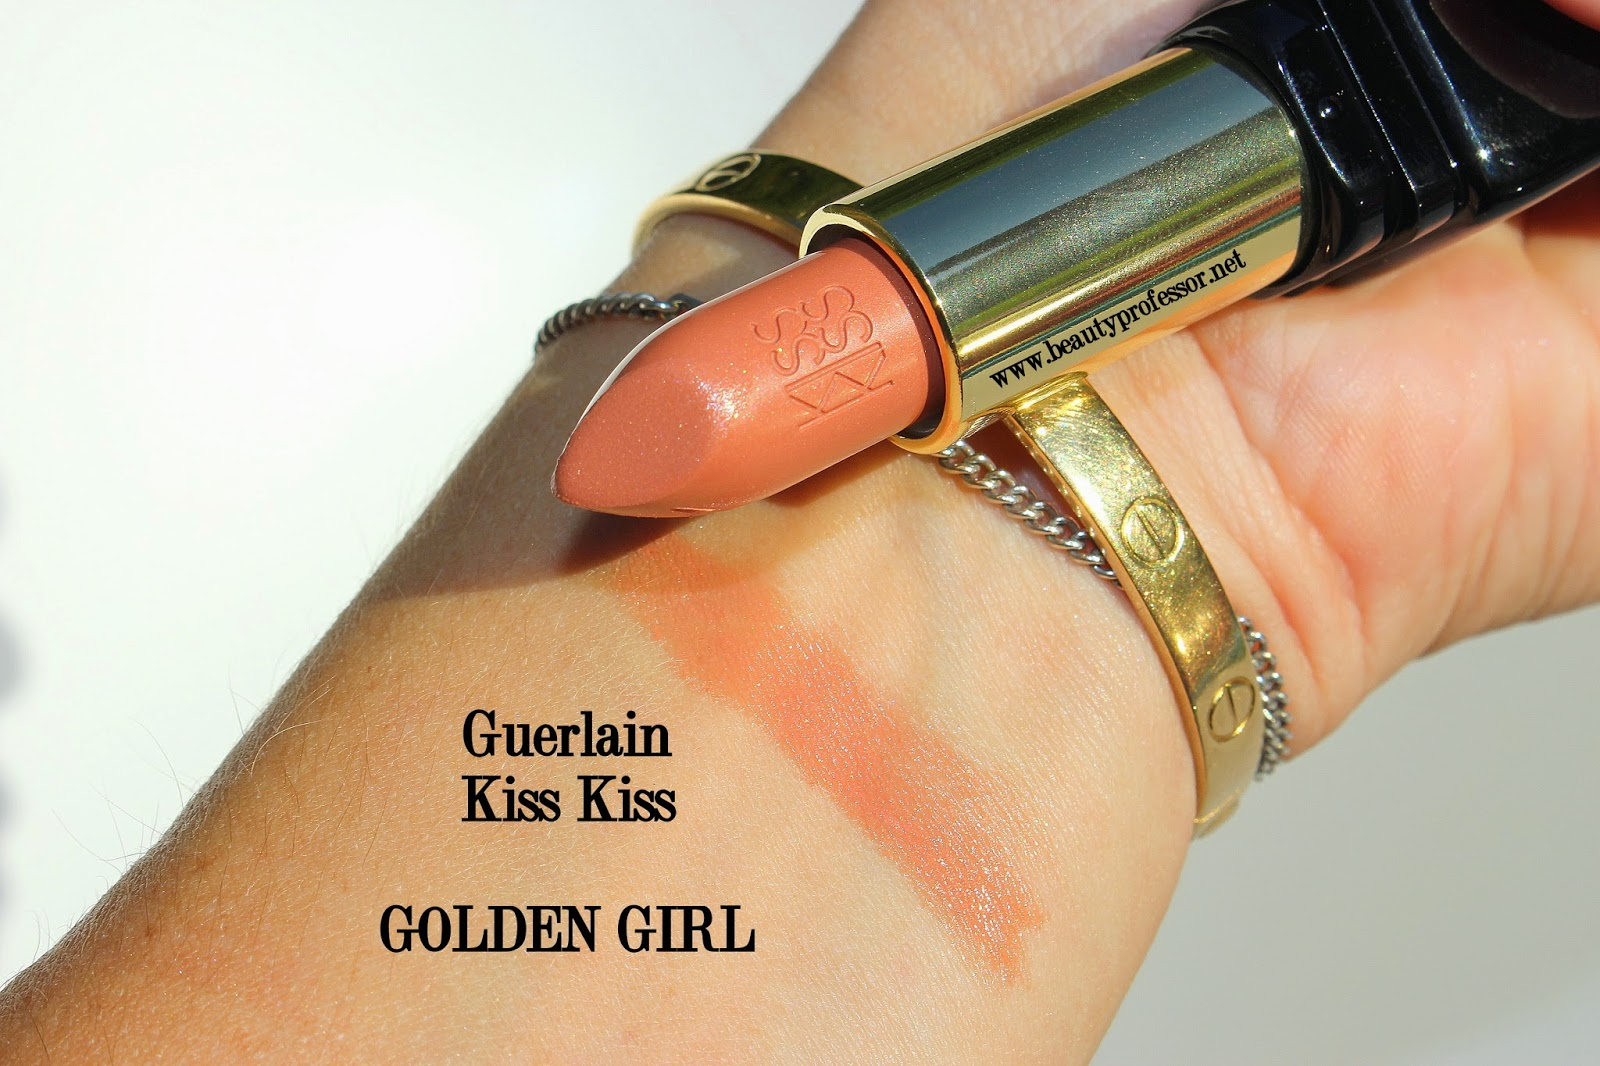 guerlain kiss kiss lipstick golden girl swatch